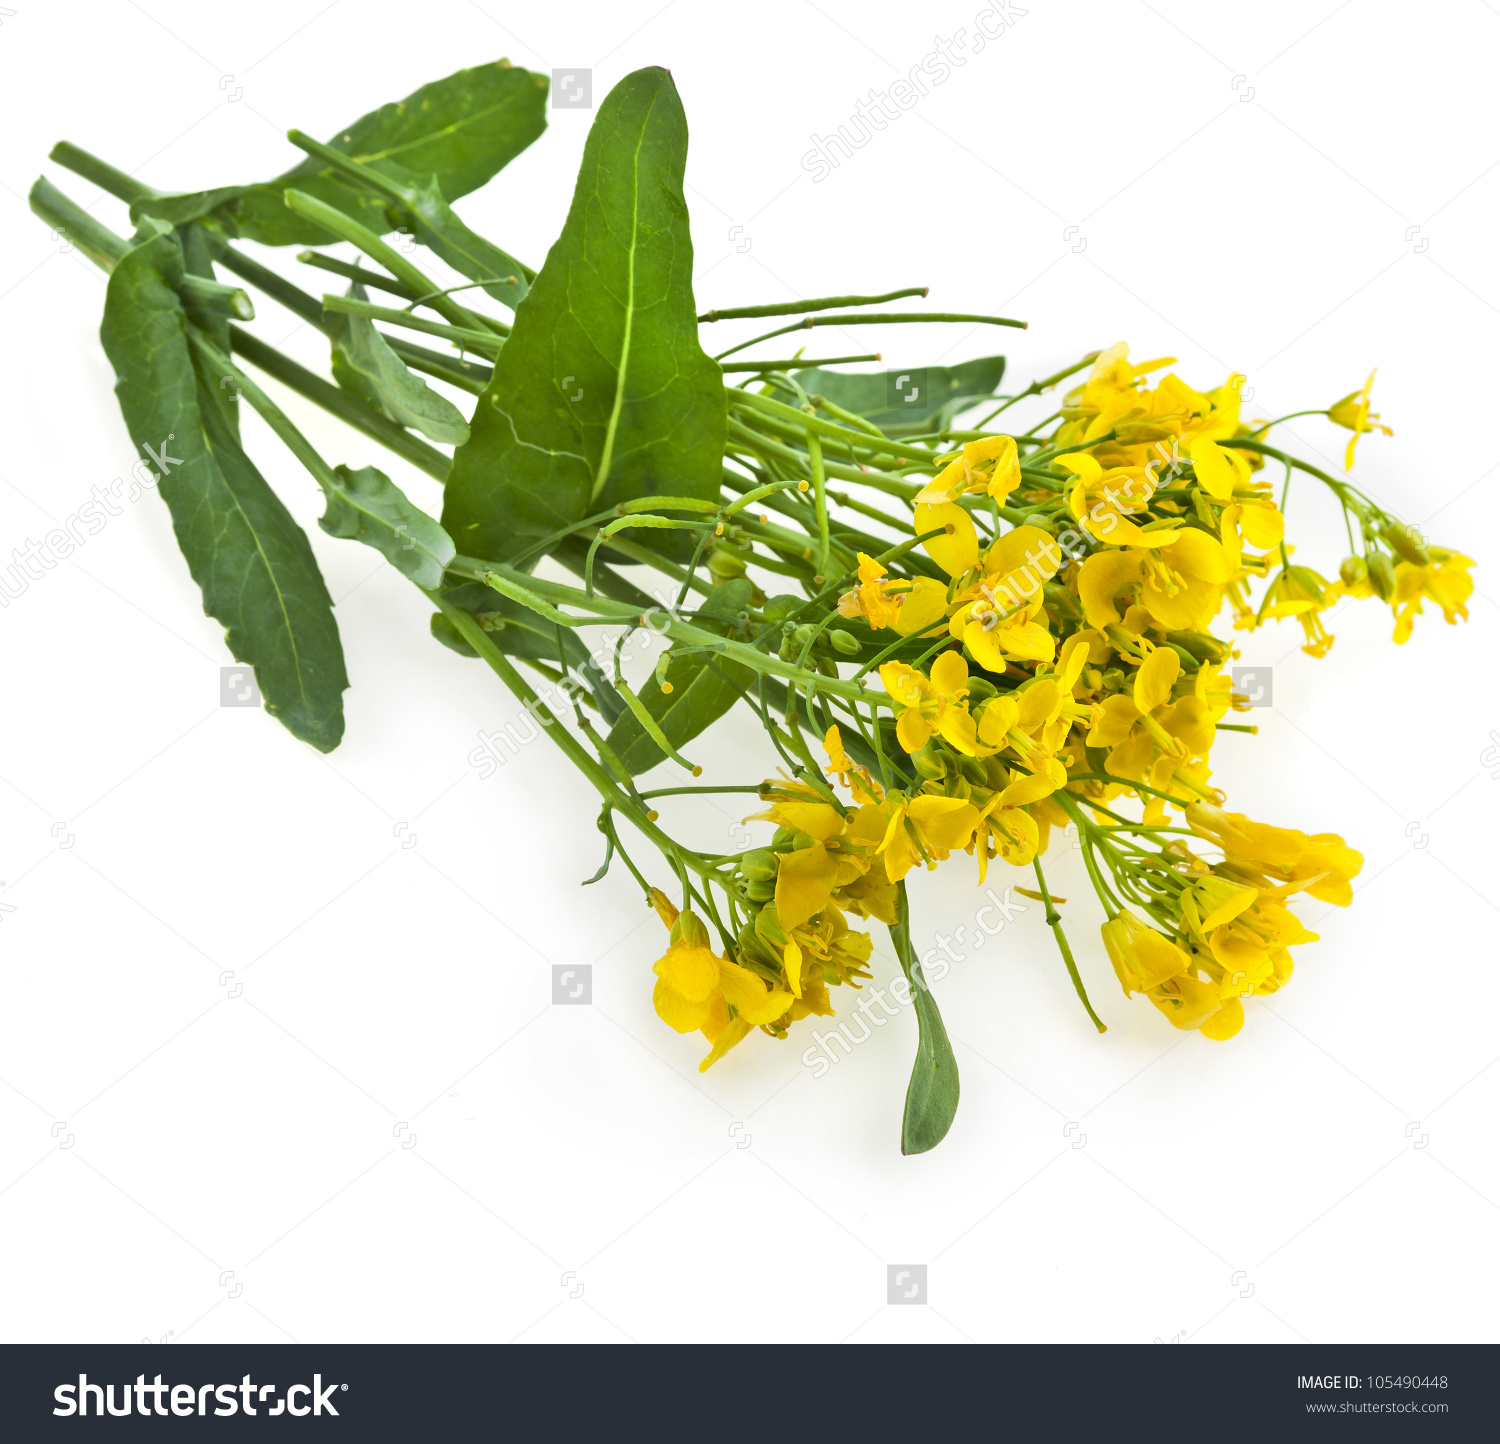 Flower Rapeseed Rape Blossoms Brassica Napus Stock Photo 105490448.